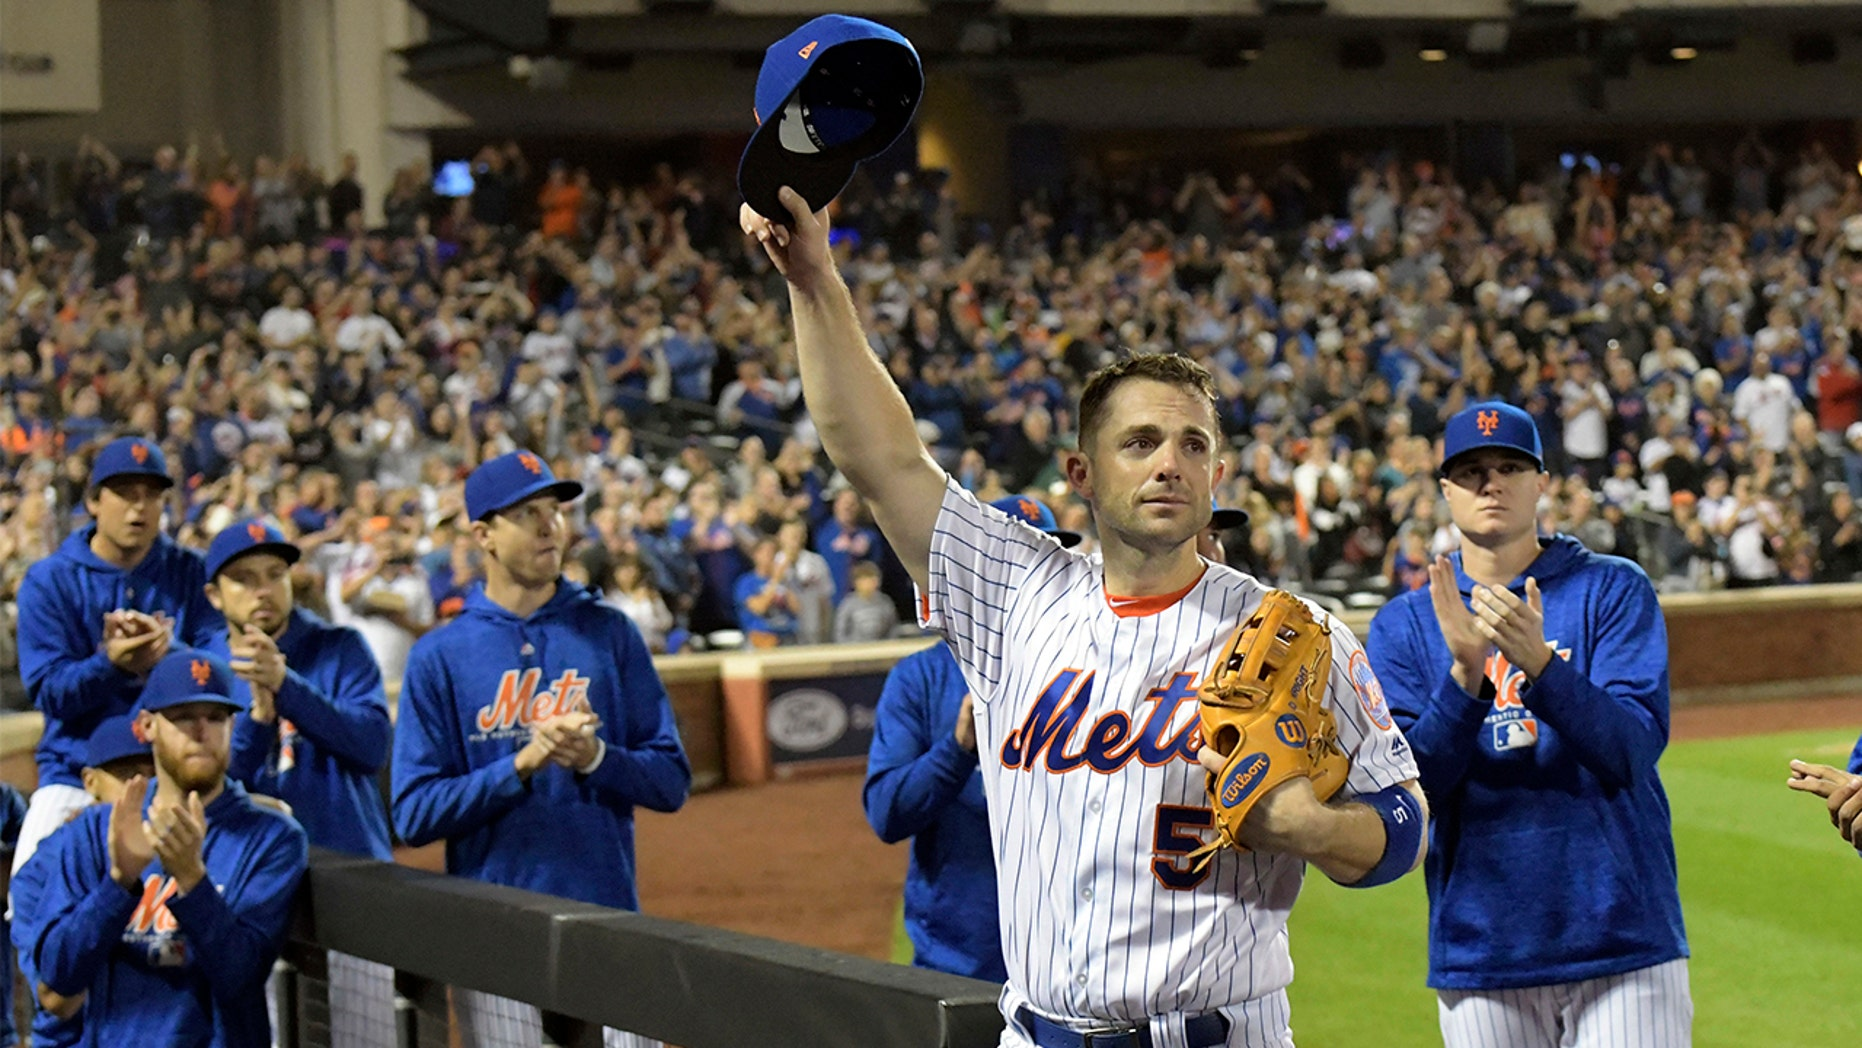 David Wright acknowledges the fans as he leaves the field after coming out of a baseball game during the fifth inning against the Miami Marlins, Saturday, Sept. 29, 2018, in New York.